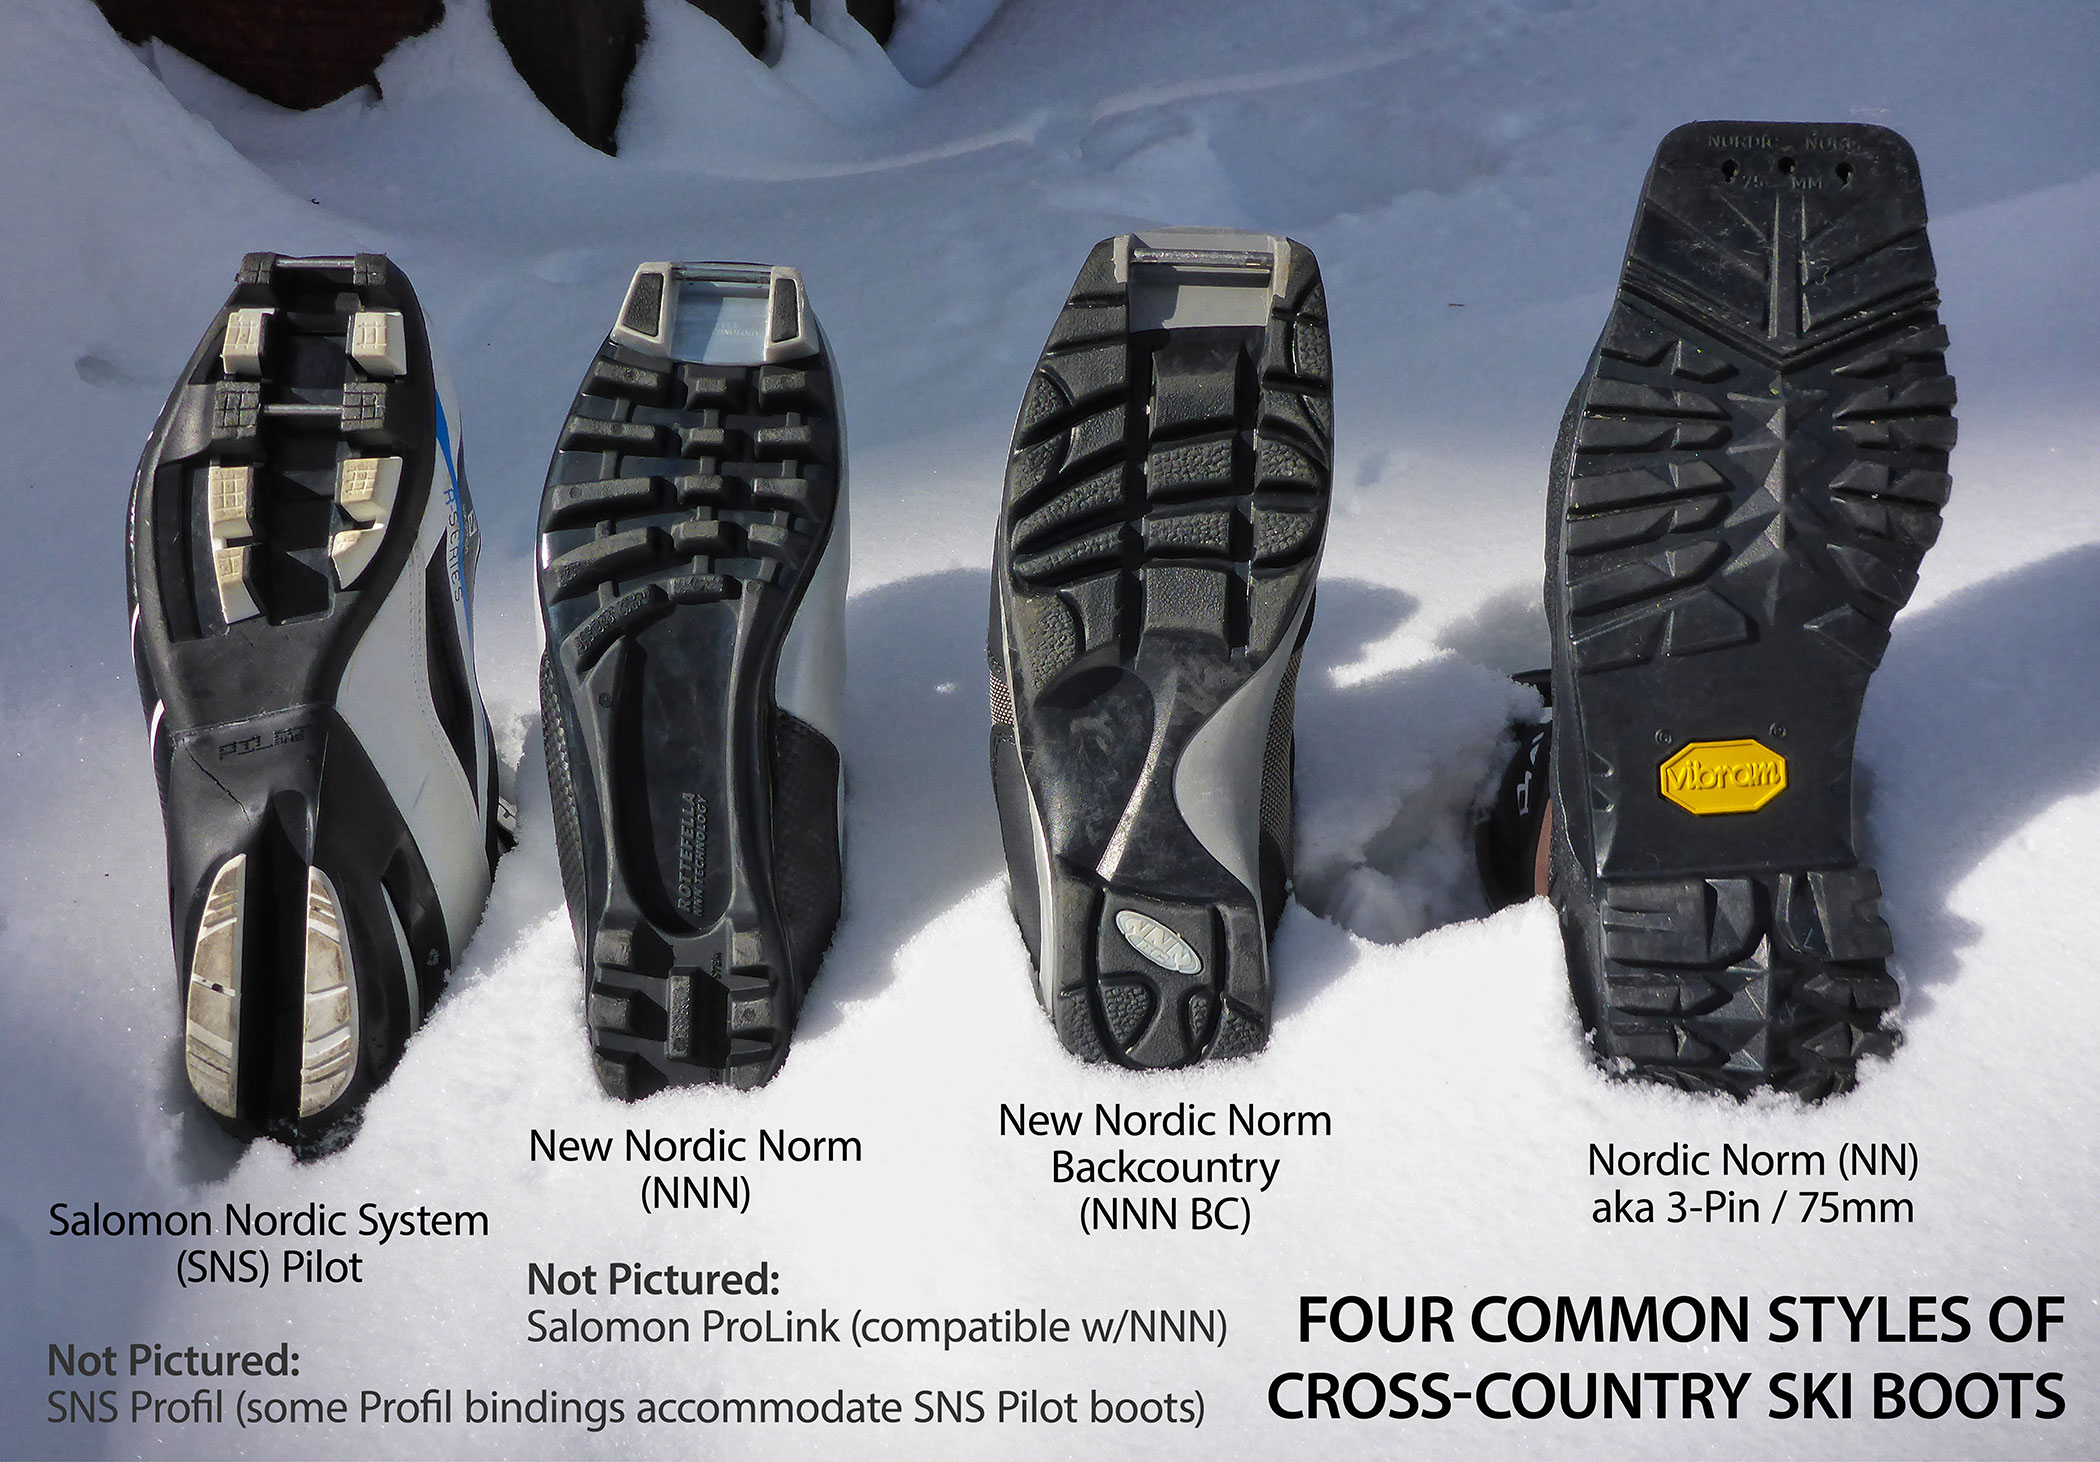 Xc Skiing Explained Part 5 Classic Cross Country Ski Boots Tahoe Trail Guide